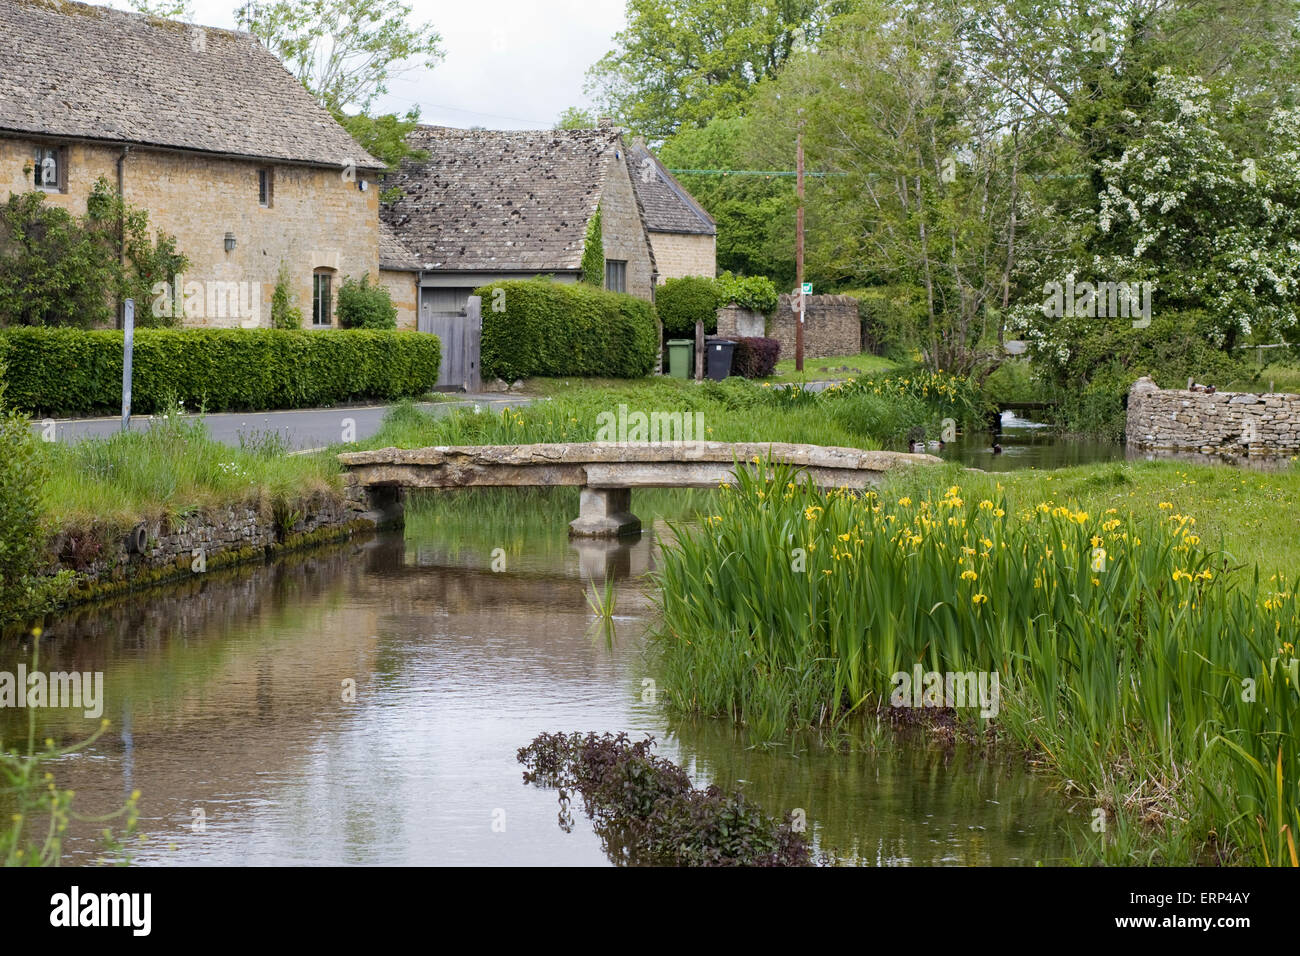 Stone cottages in Lower slaughter in the cotswolds - Stock Image